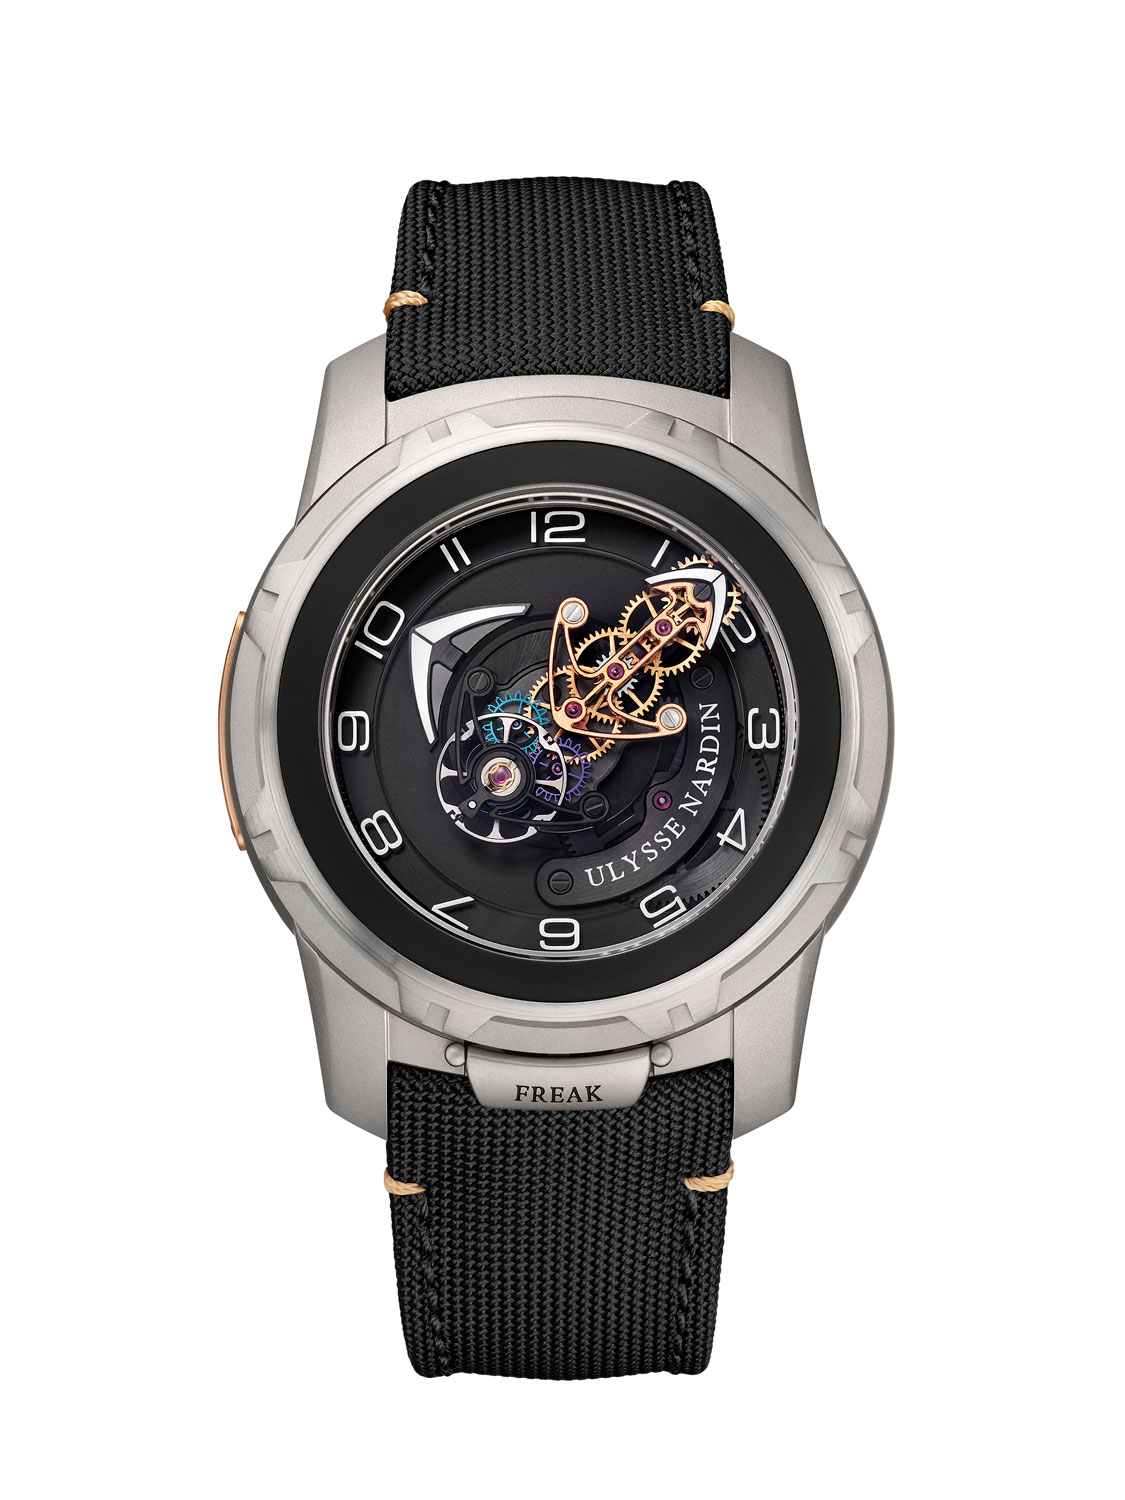 The_Ink_Collective_Creative_Content_Design_Agency_Paris_Sydney_Luxury_Editorial_Kering_Ulysse_Nardin_CEO_Patrick_Pruniaux_CEO_Interview_Luxury_Watches_Timepieces_Swiss_Manufacture_Freak_Out_22.jpg